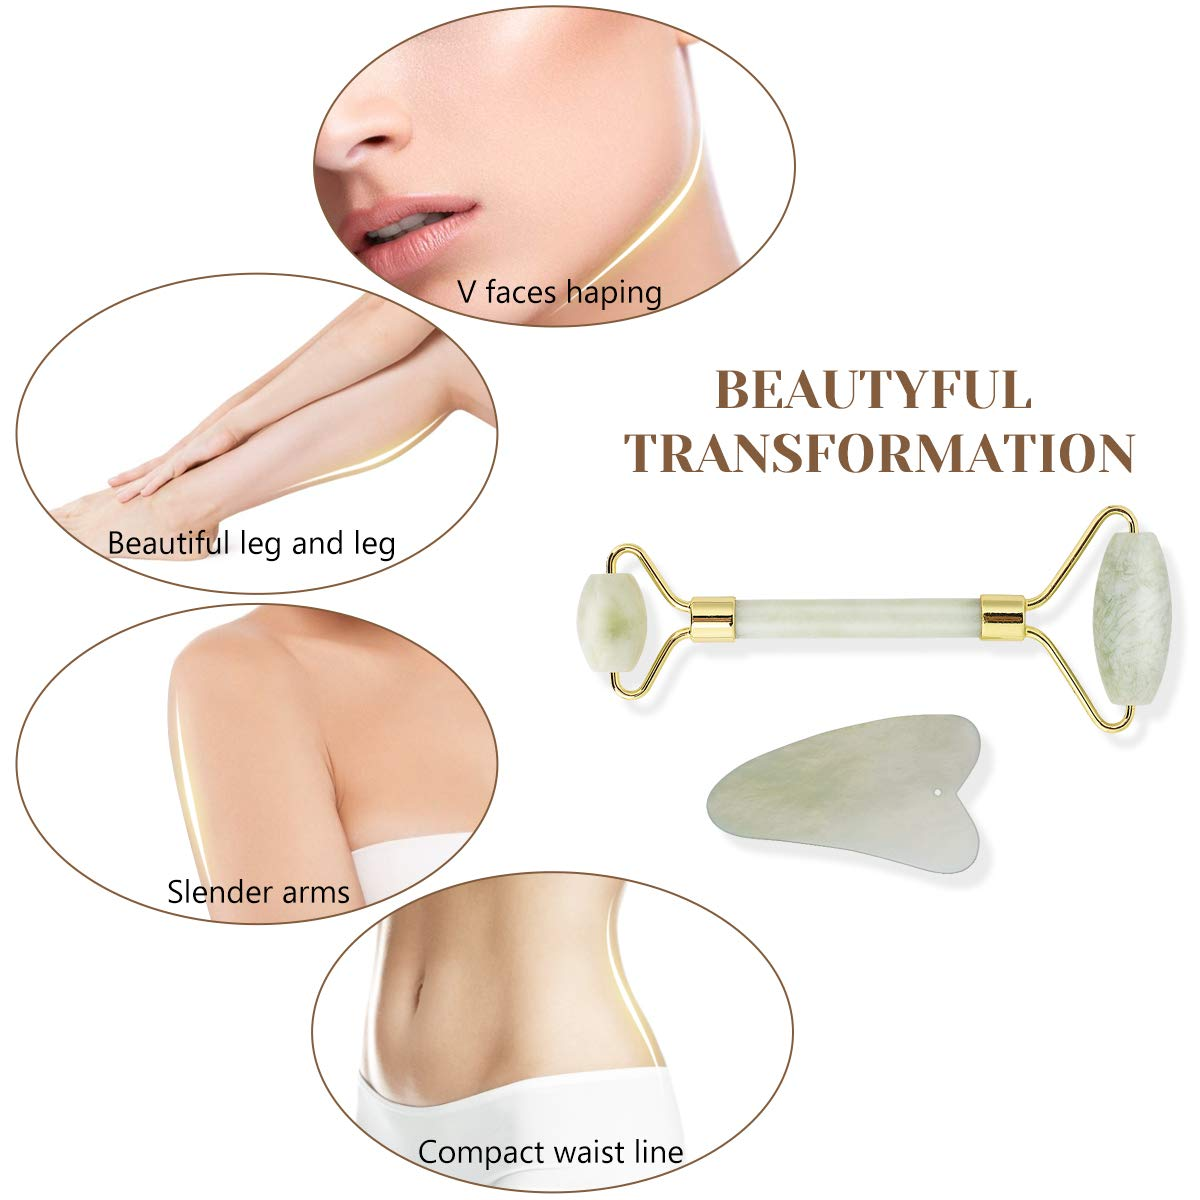 Jade Roller Gua Sha Set-Jade Roller For Face 2019 UPGRADED FGXJKGH Facial Roller Massager Body Eyes Neck Massager Tool for Eye Puffiness,Aging Release Pressure-100% Original Natural Jade Stone by FGXJKGH